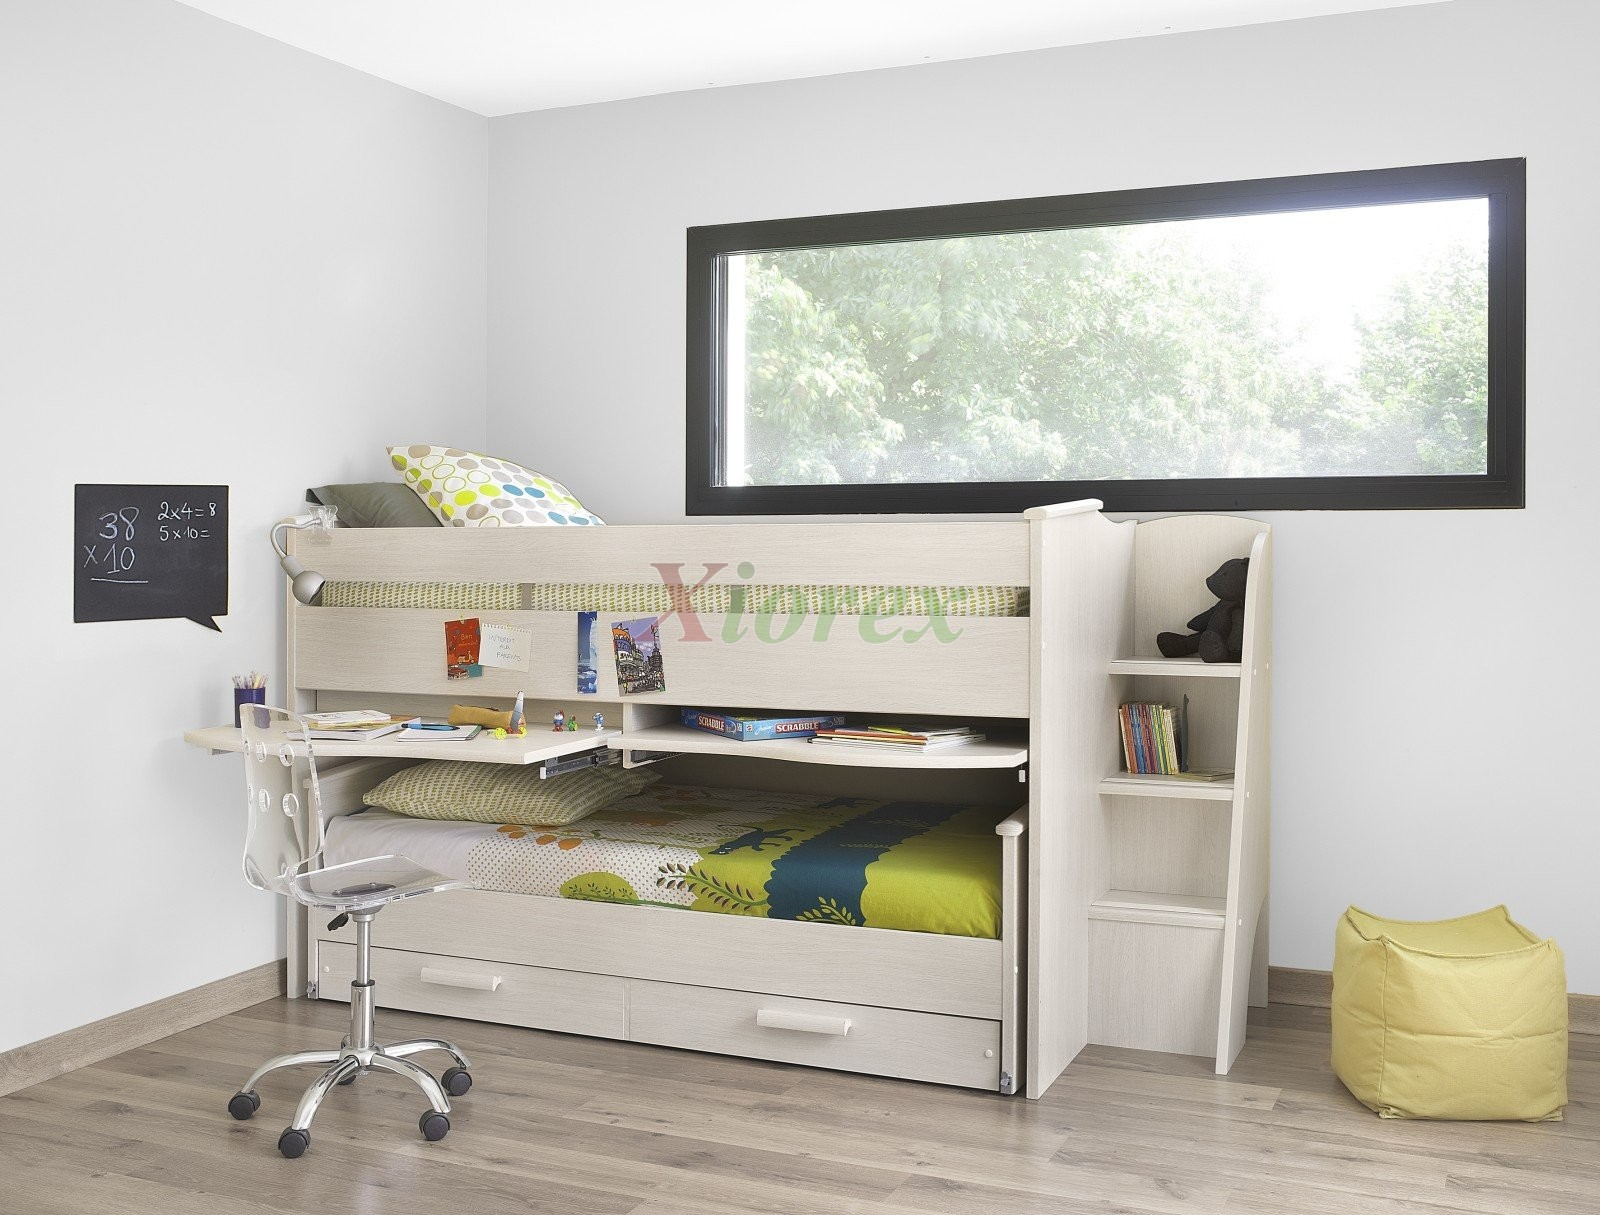 cabin bed gami montana cabin bed w slideout bed in white ash effect